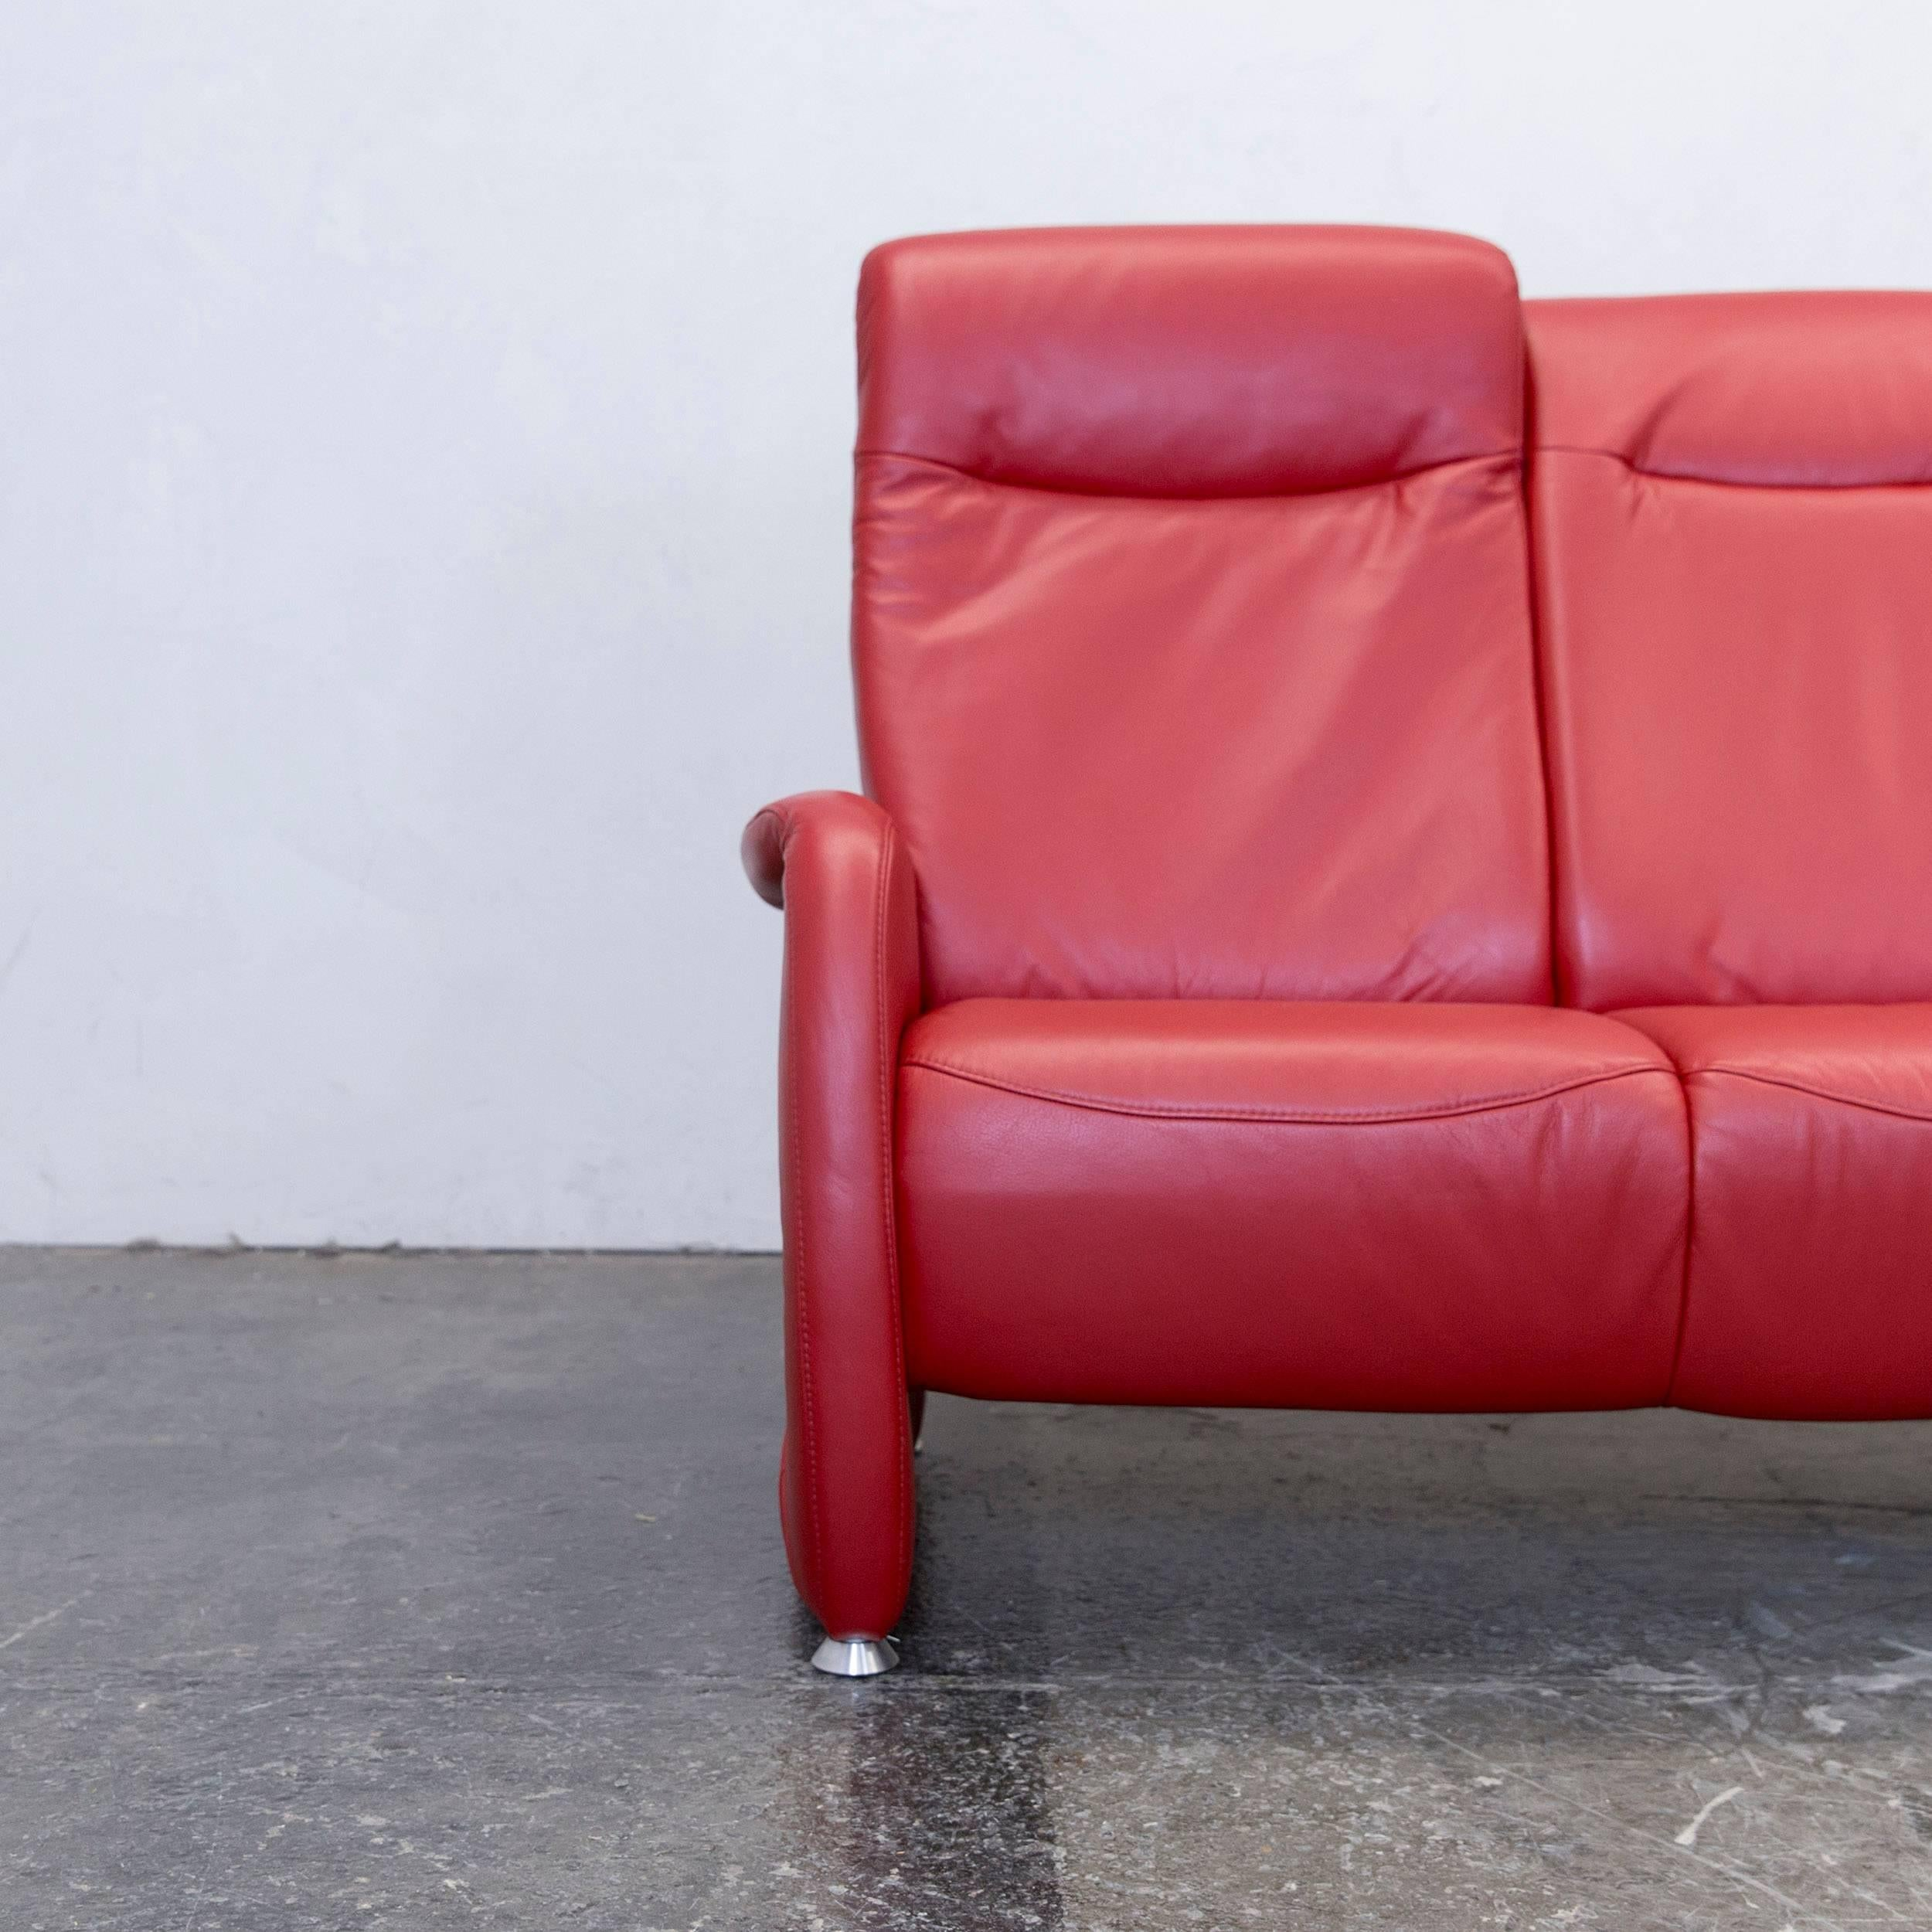 Stunning Excellent Ewald Schillig Designer Threeseat Couch Leather Red Couch  Modern With Couch Schillig With Sofa Dreisitzer